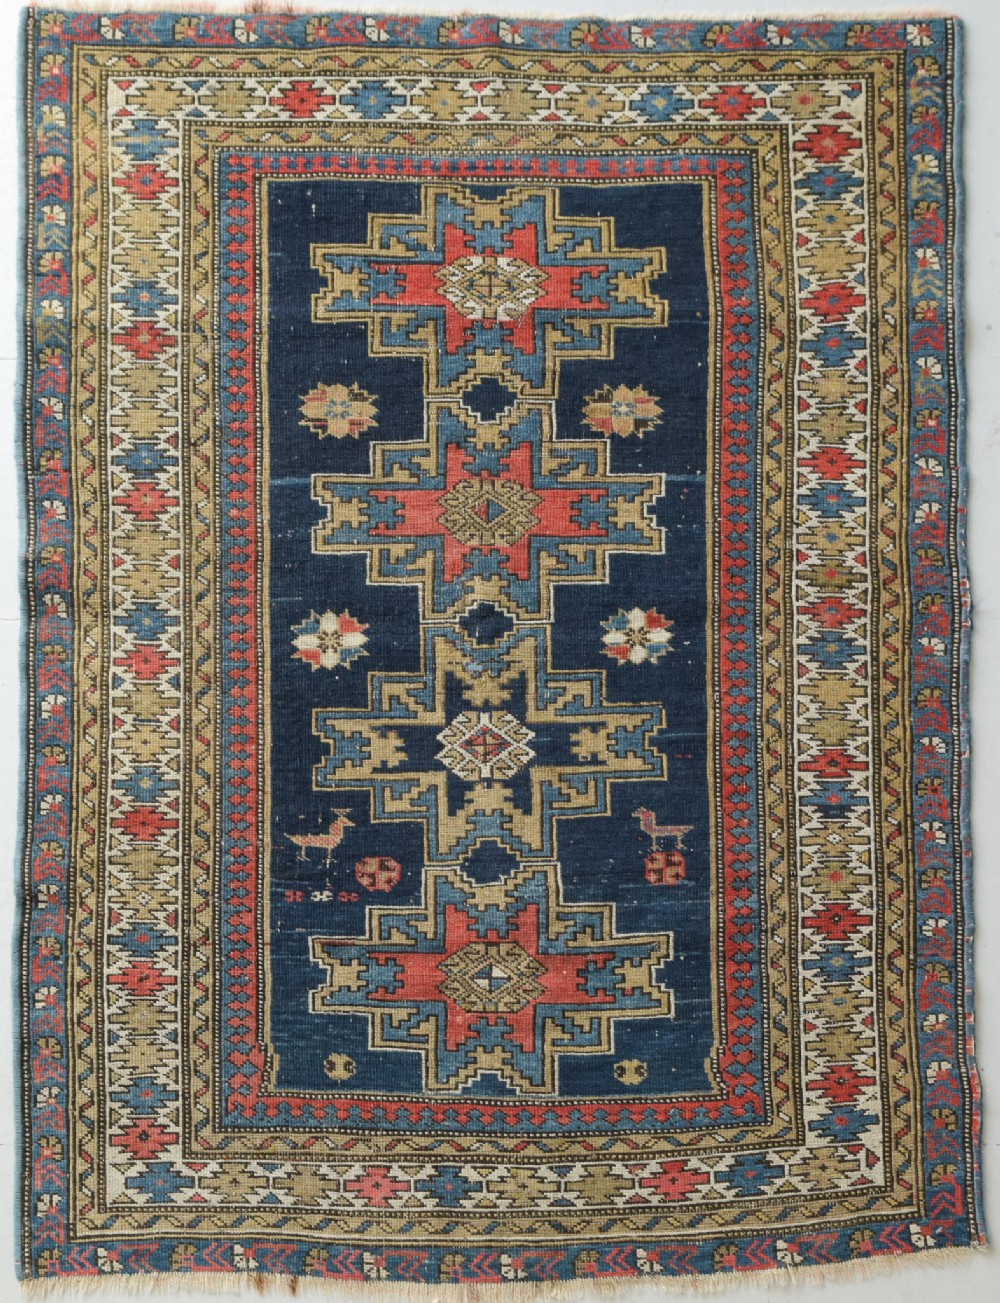 hand made blue ground persian rug with bird type figures